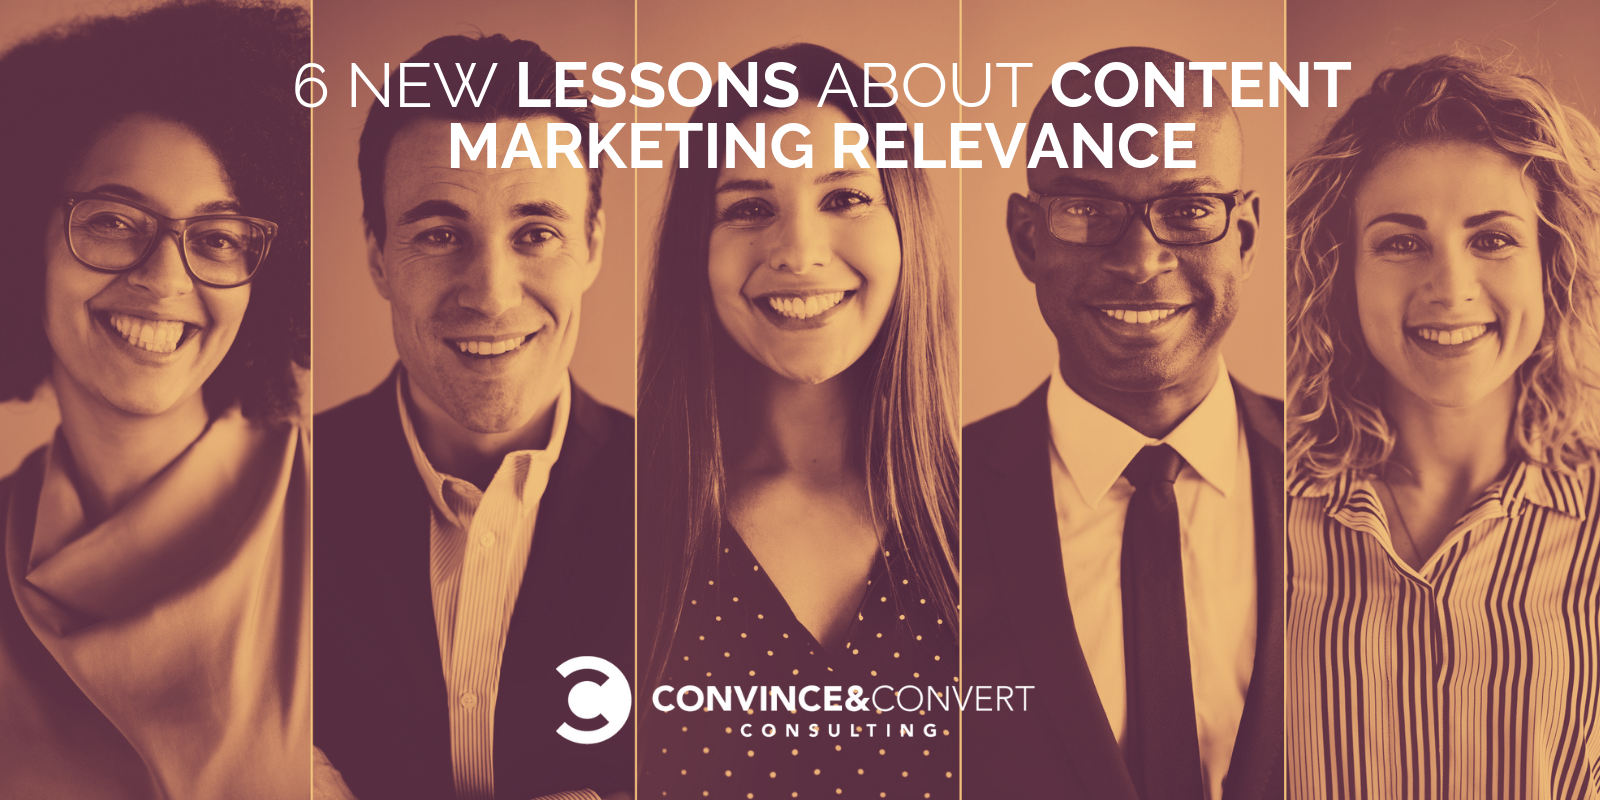 6 New Lessons About Content Marketing Relevance